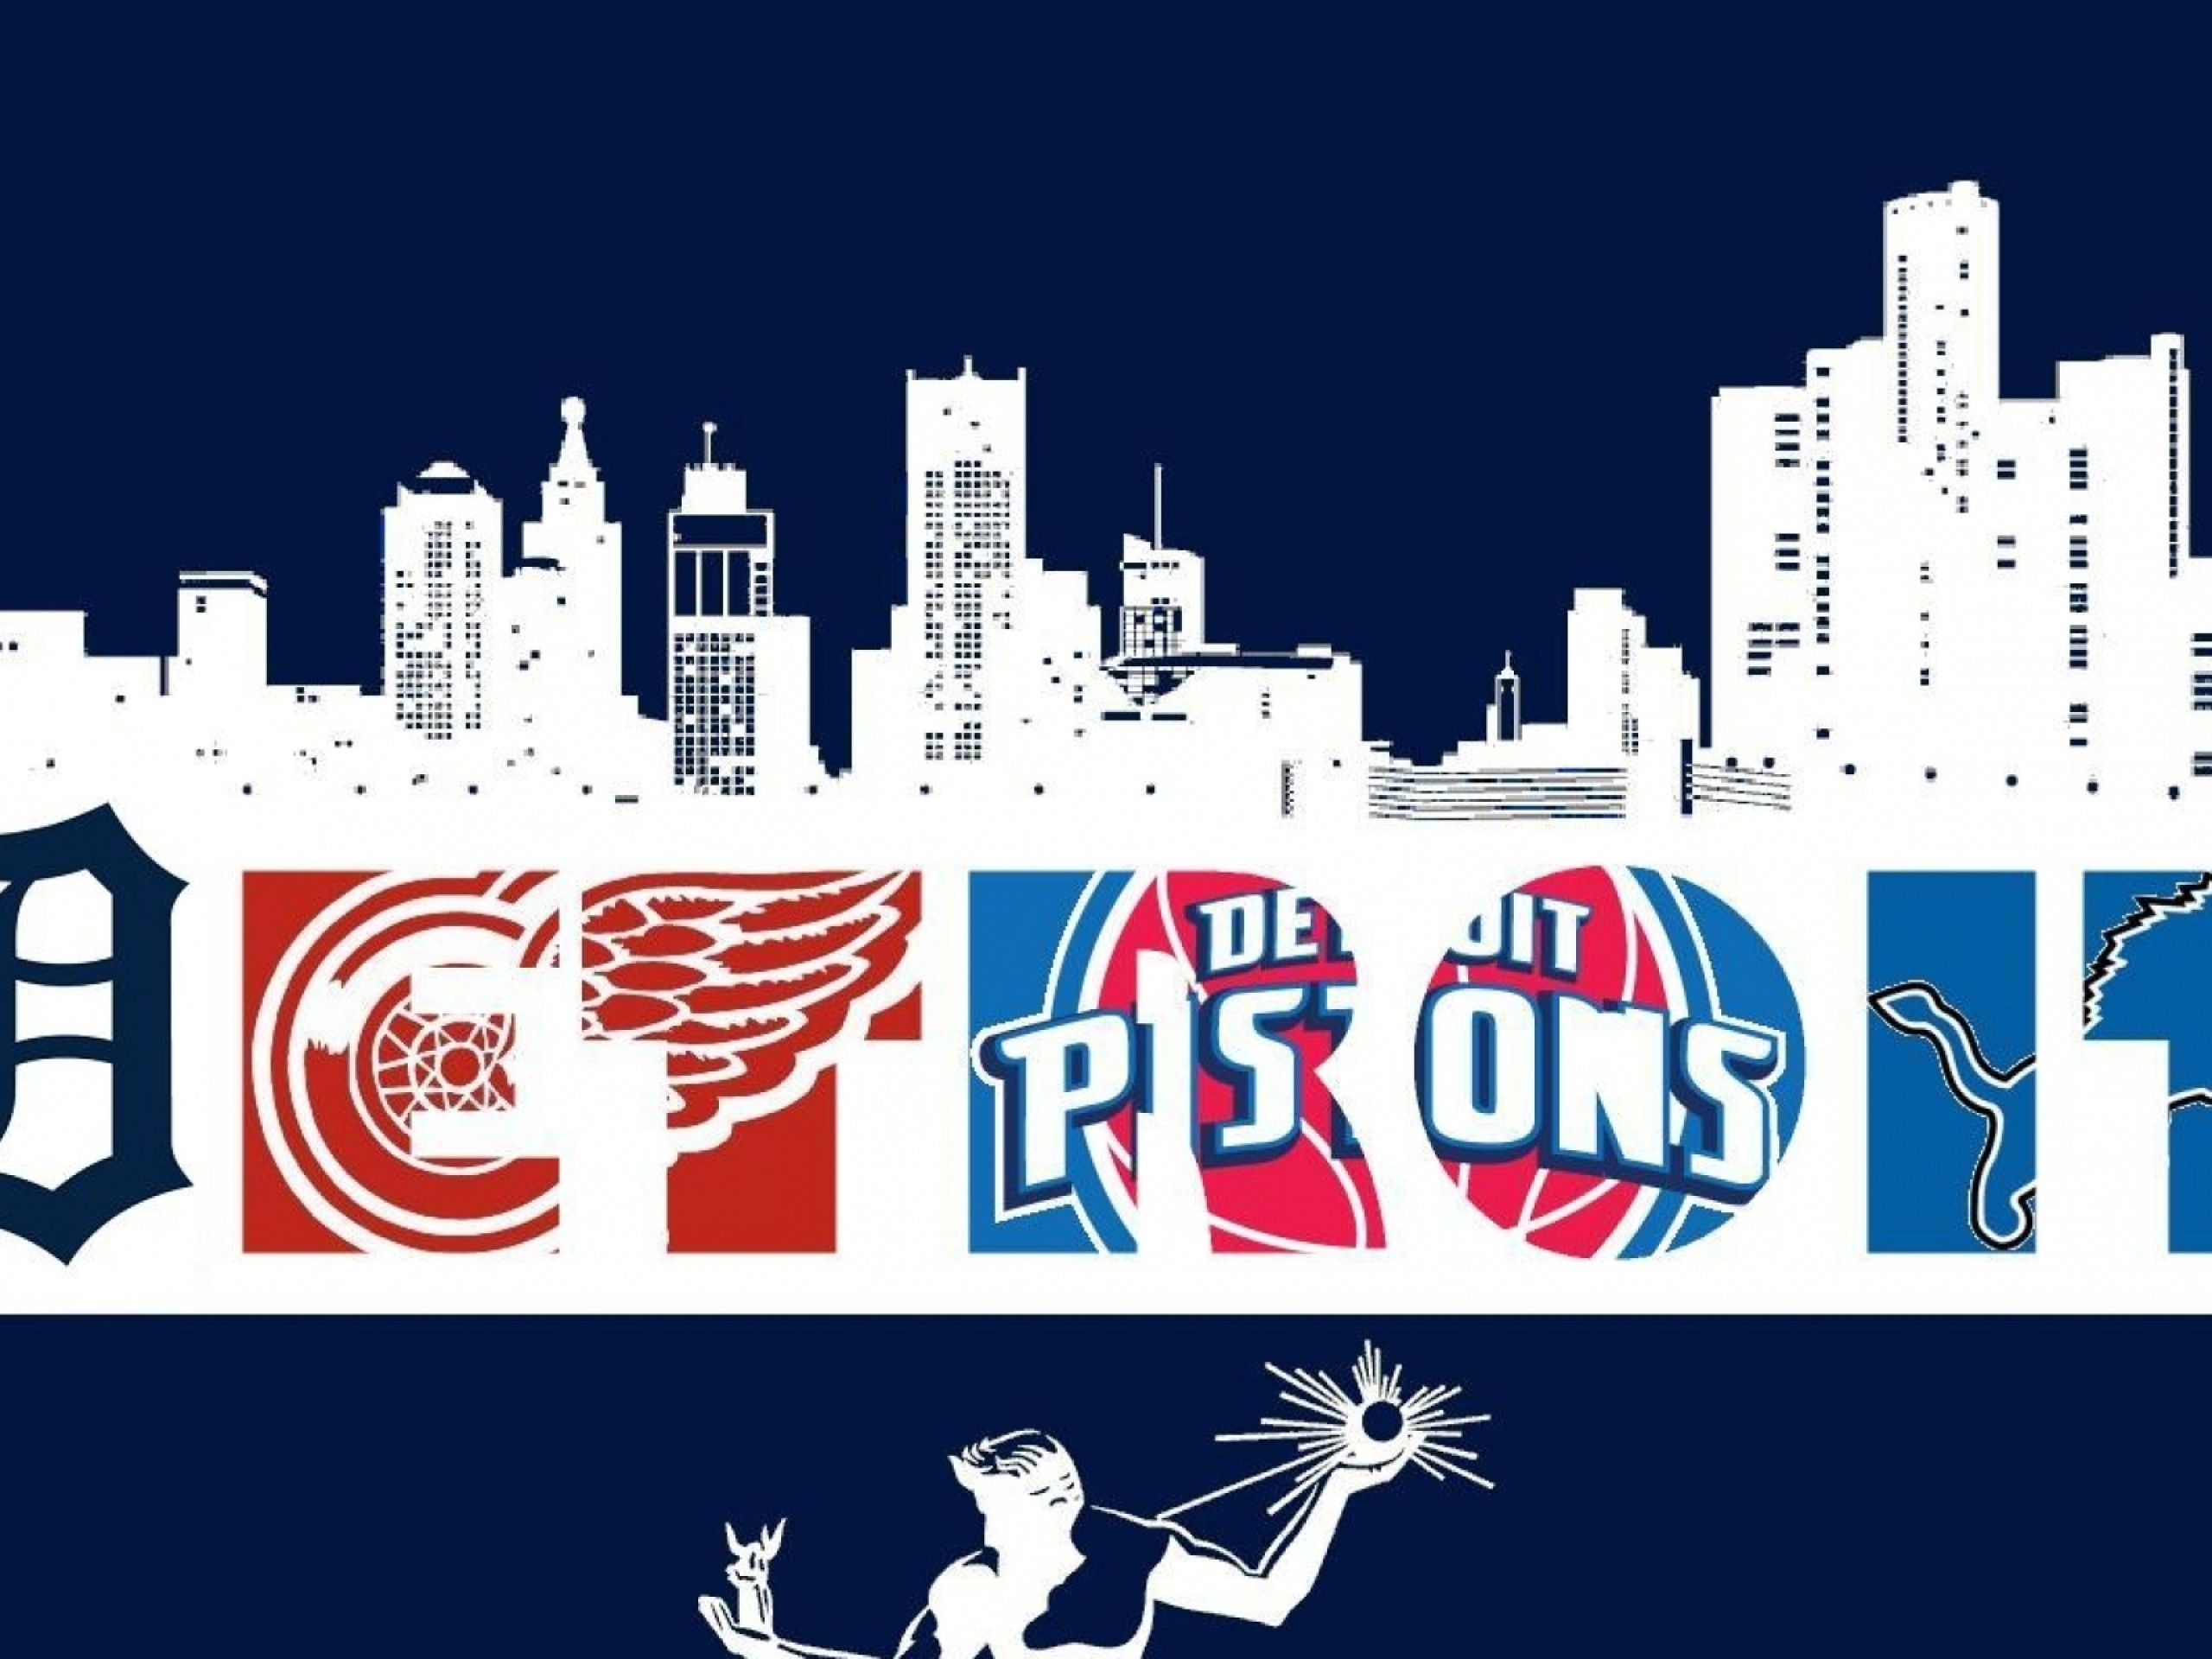 2560x1920 ... Detroit Sports Desktop Wallpaper - WallpaperSafari ...